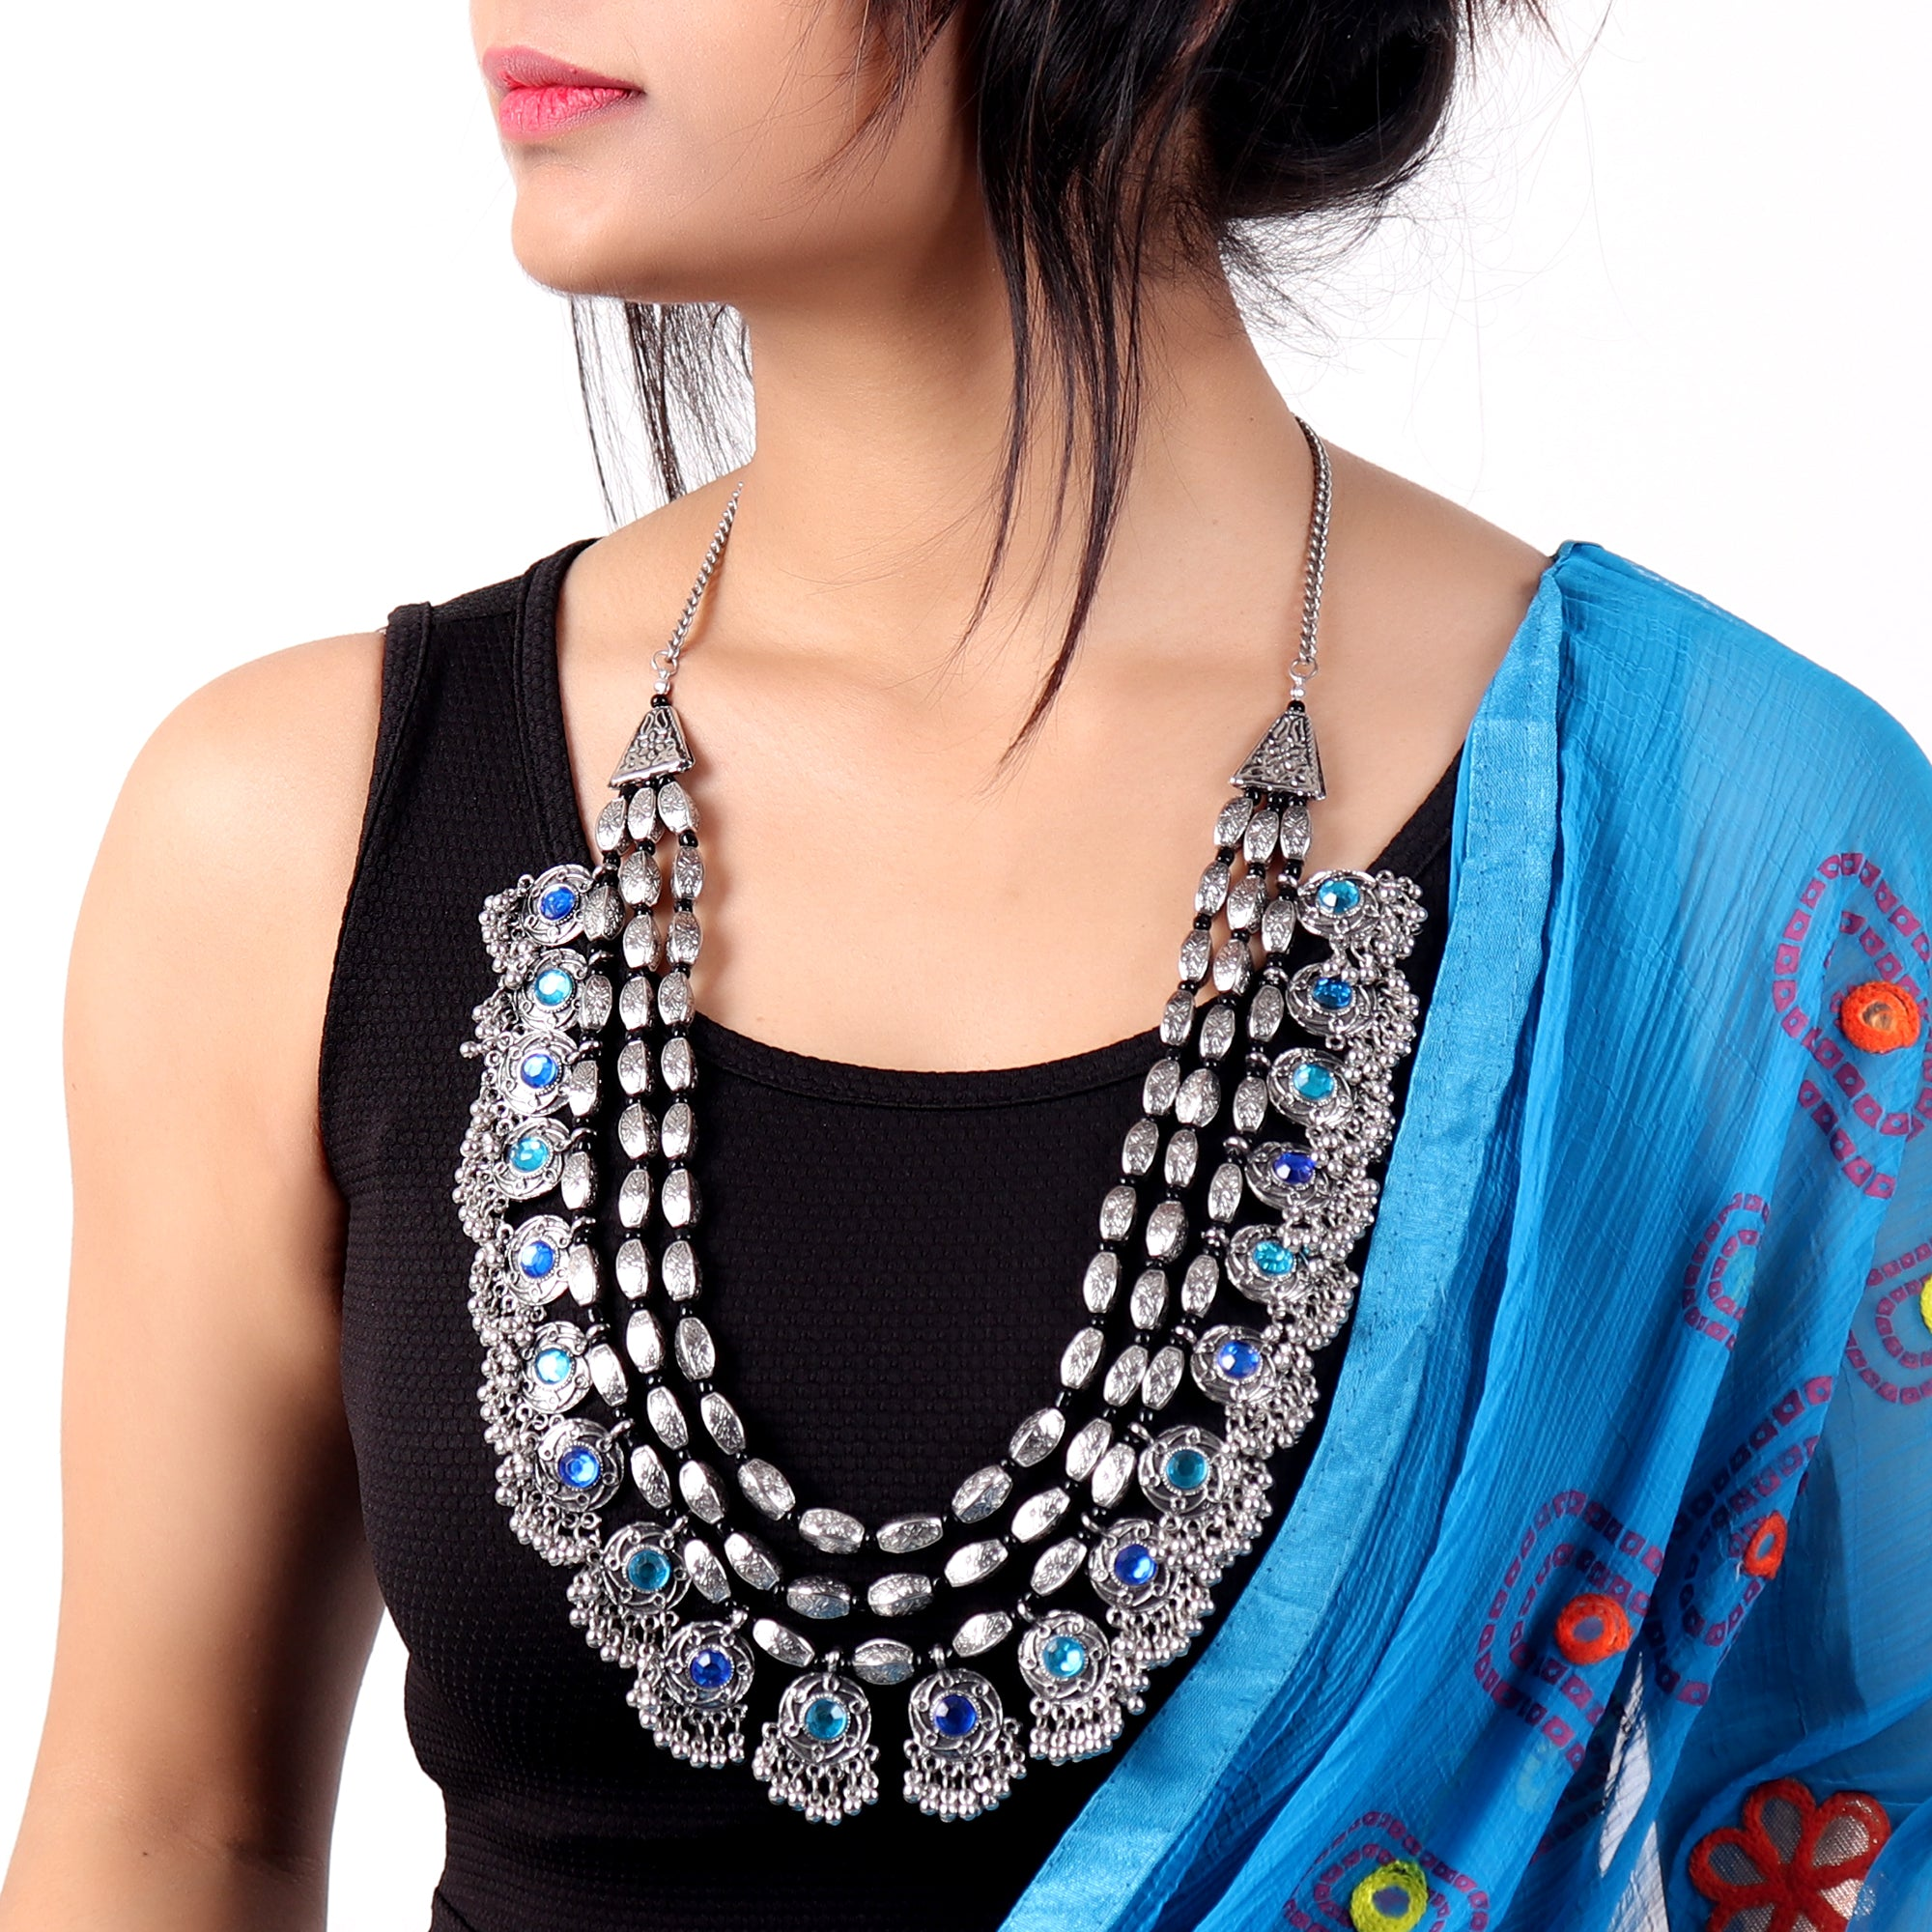 Necklace,Rajwada Necklace in Silver hue - Cippele Multi Store